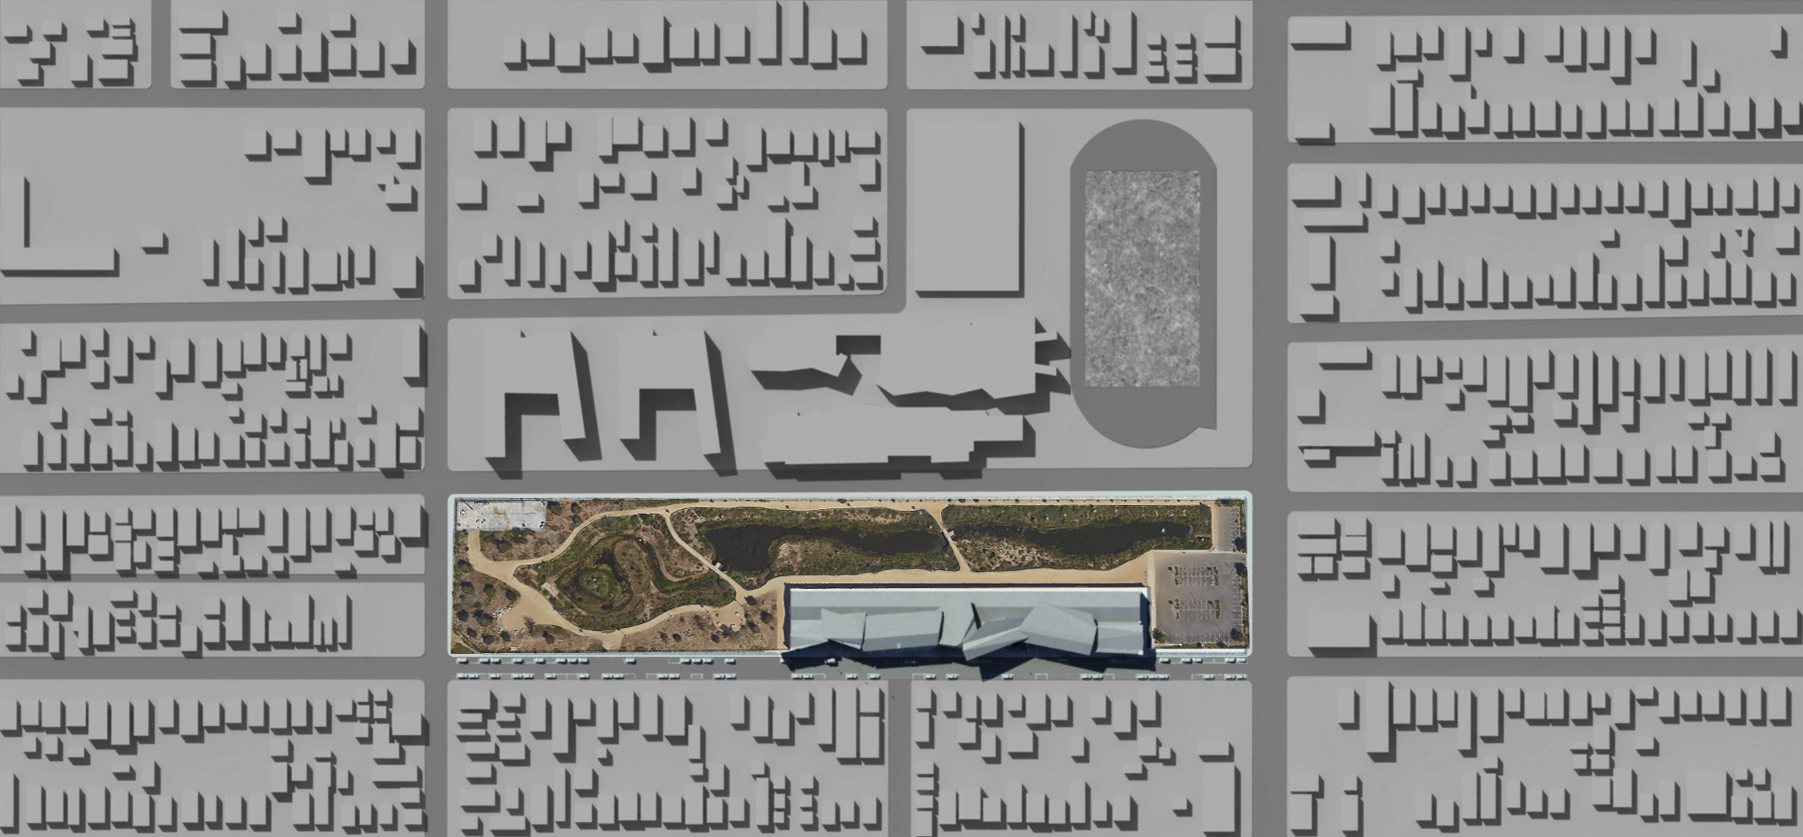 site plan - the park in its context